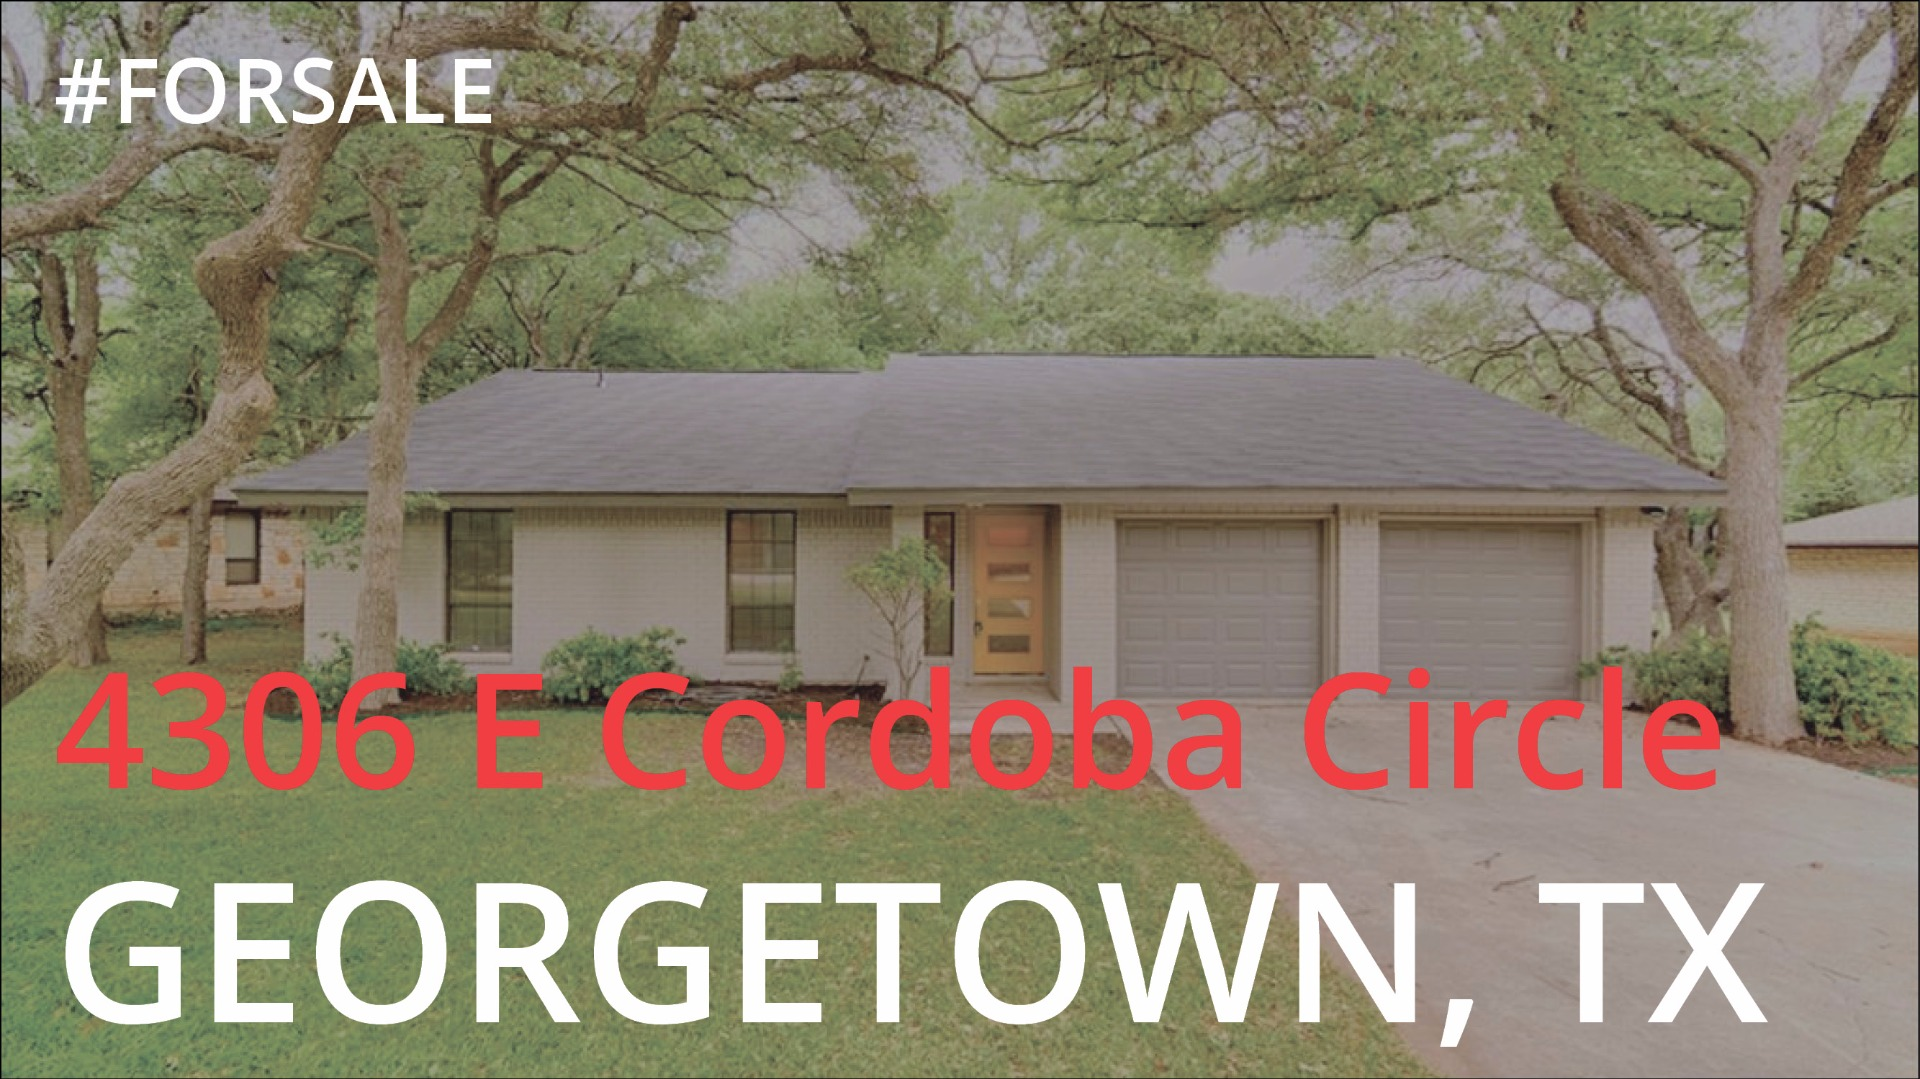 Featured: 4306 E Cordoba Circle, Georgetown TX